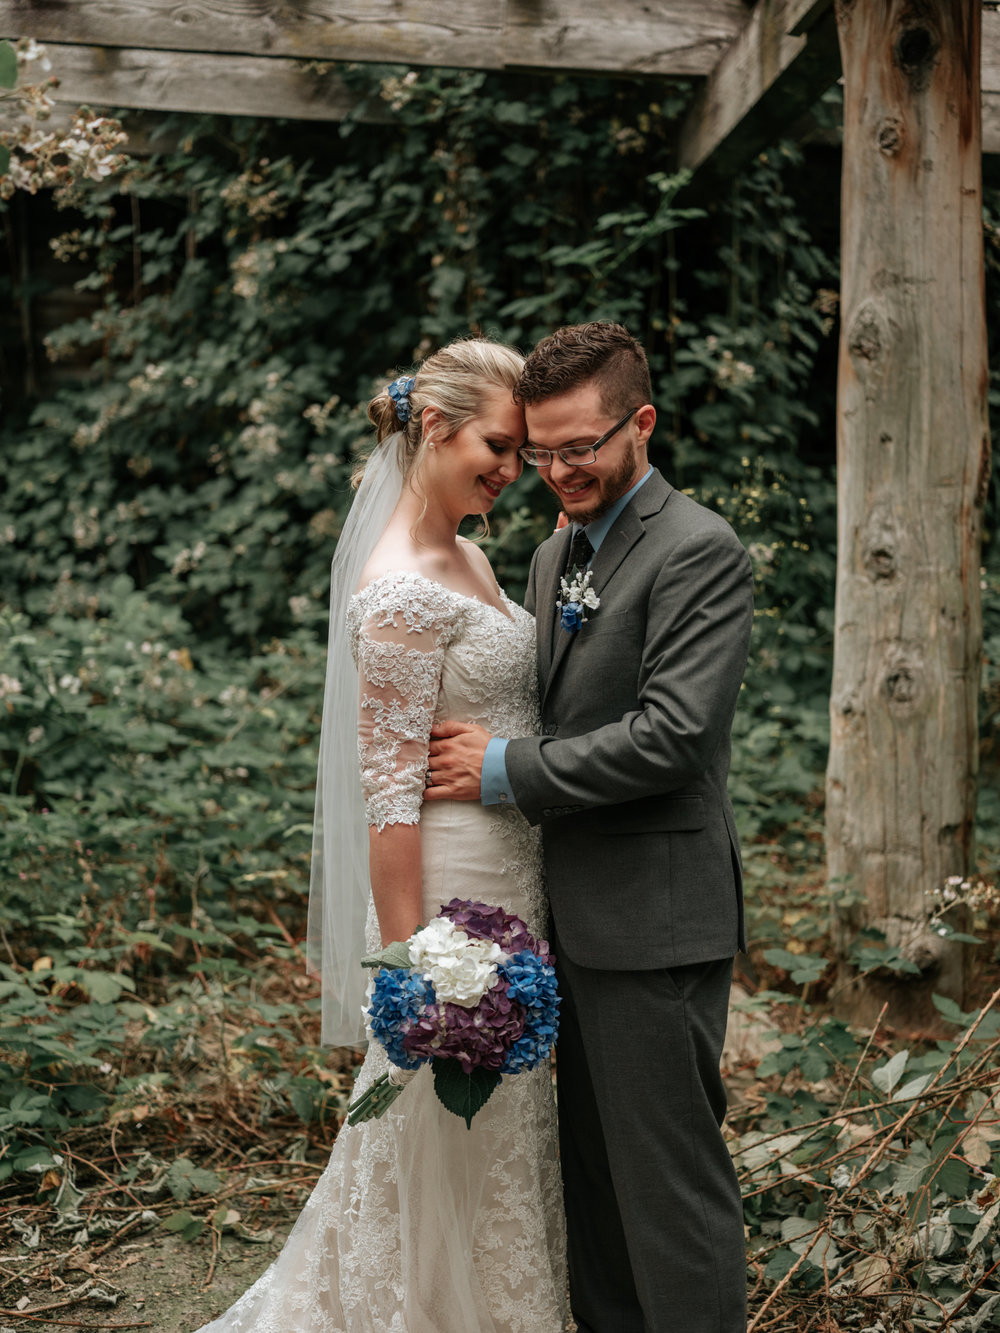 Stolen Glimpses Seattle Wedding Photographer Fall City Wedding48.jpg